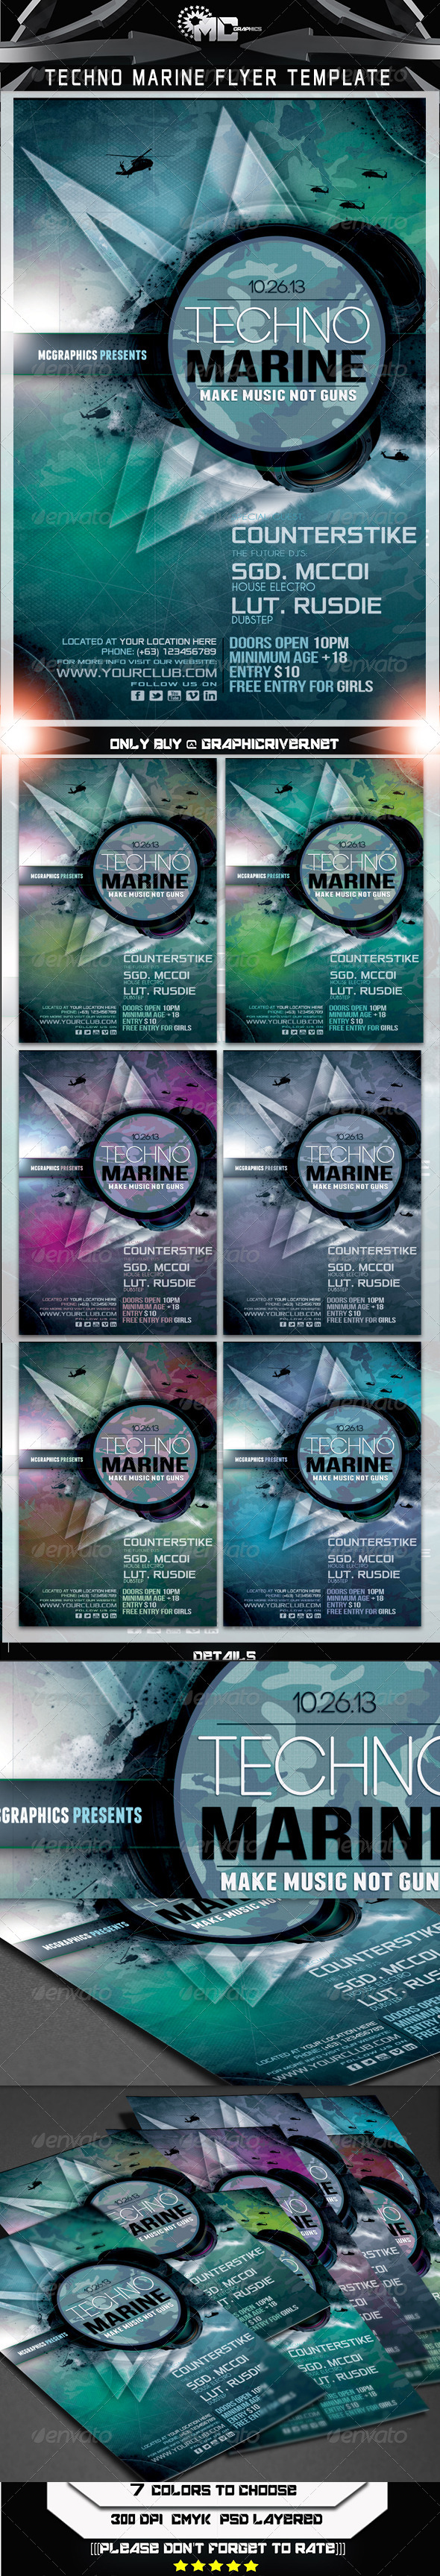 Techno Marine Flyer Template - Clubs & Parties Events